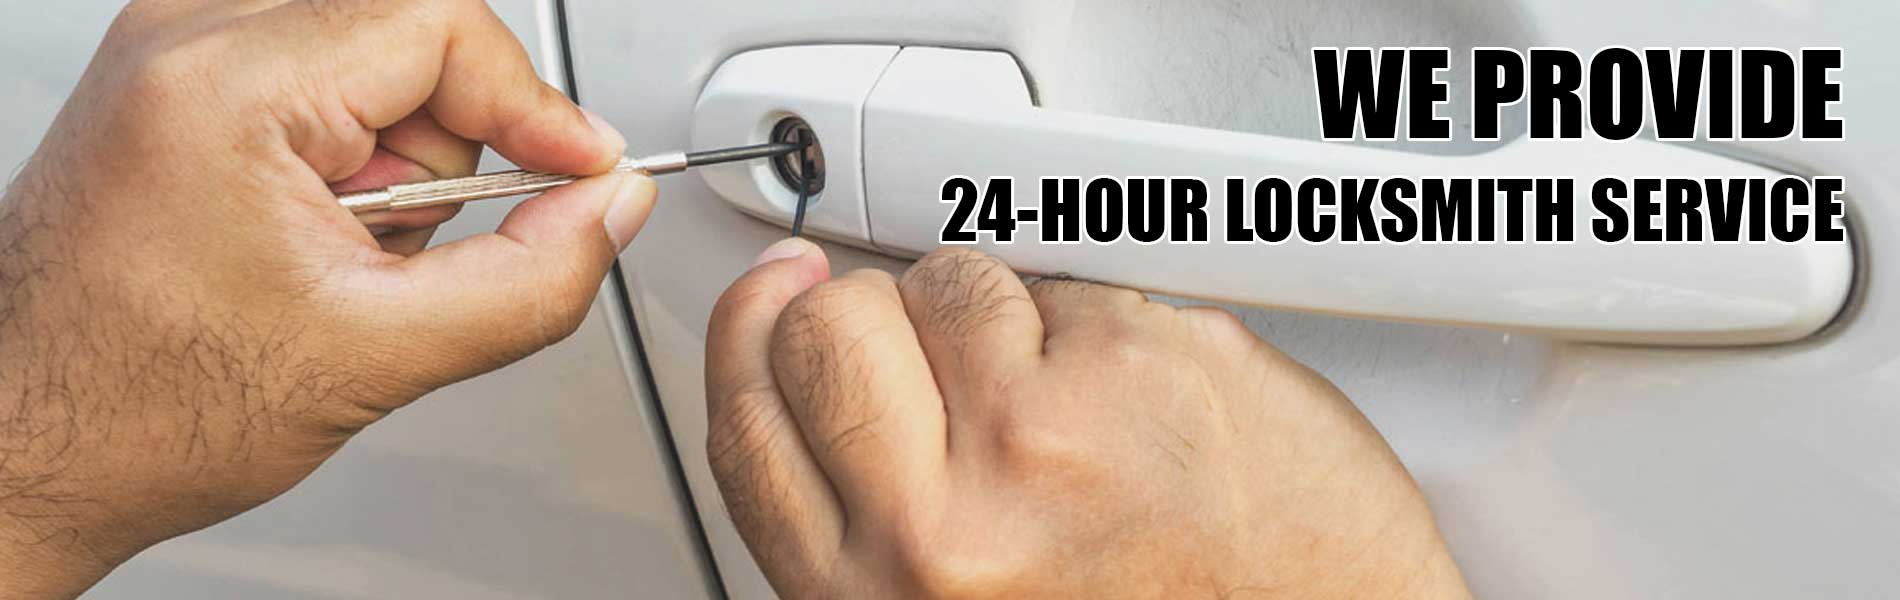 Orlando Community Locksmith Orlando, FL 407-548-2011